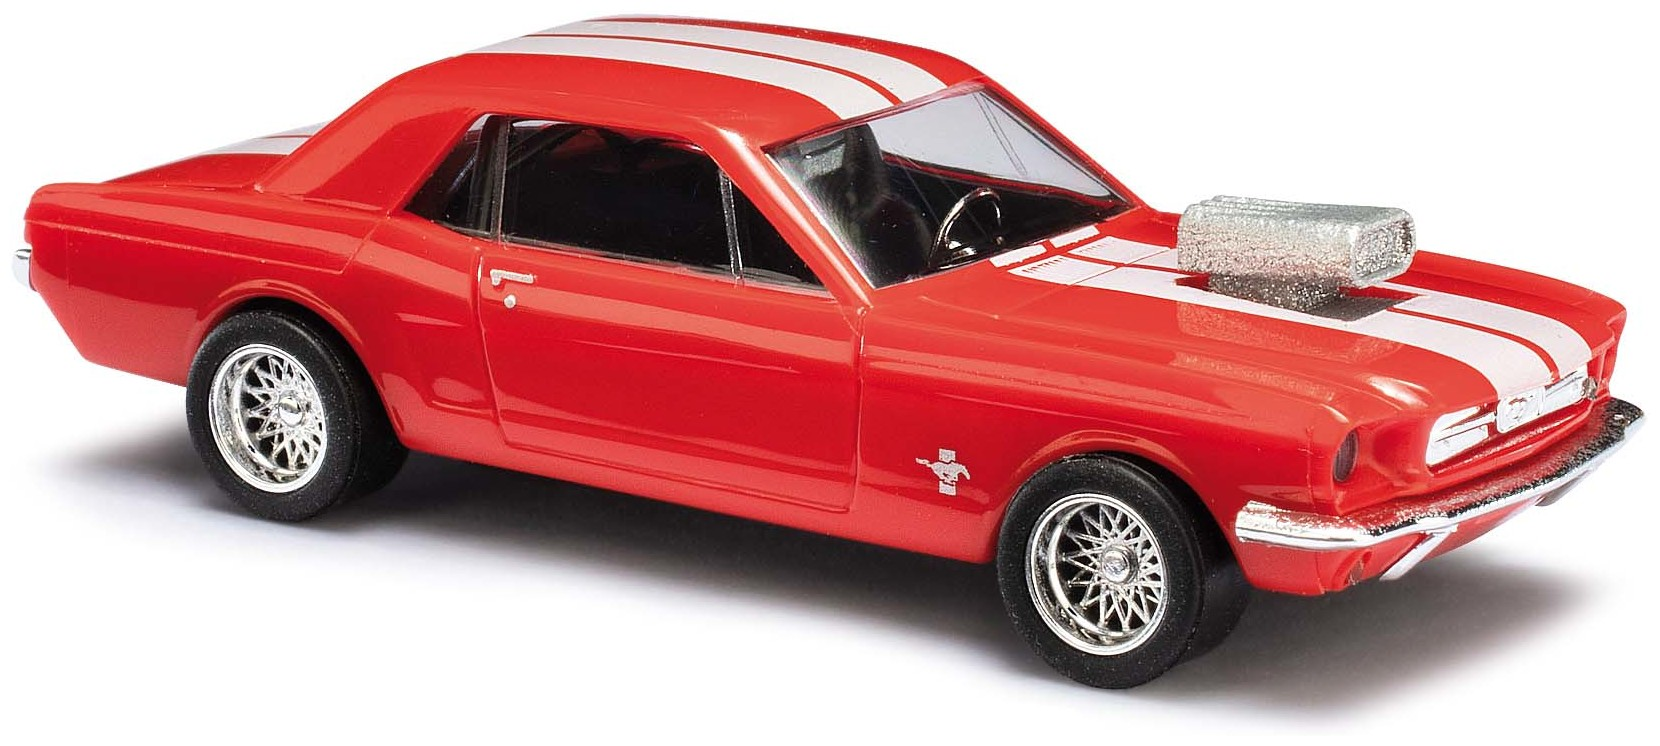 Busch 47555 Ford Mustang 64 Pace Car  H0 1:87 NEU in OVP